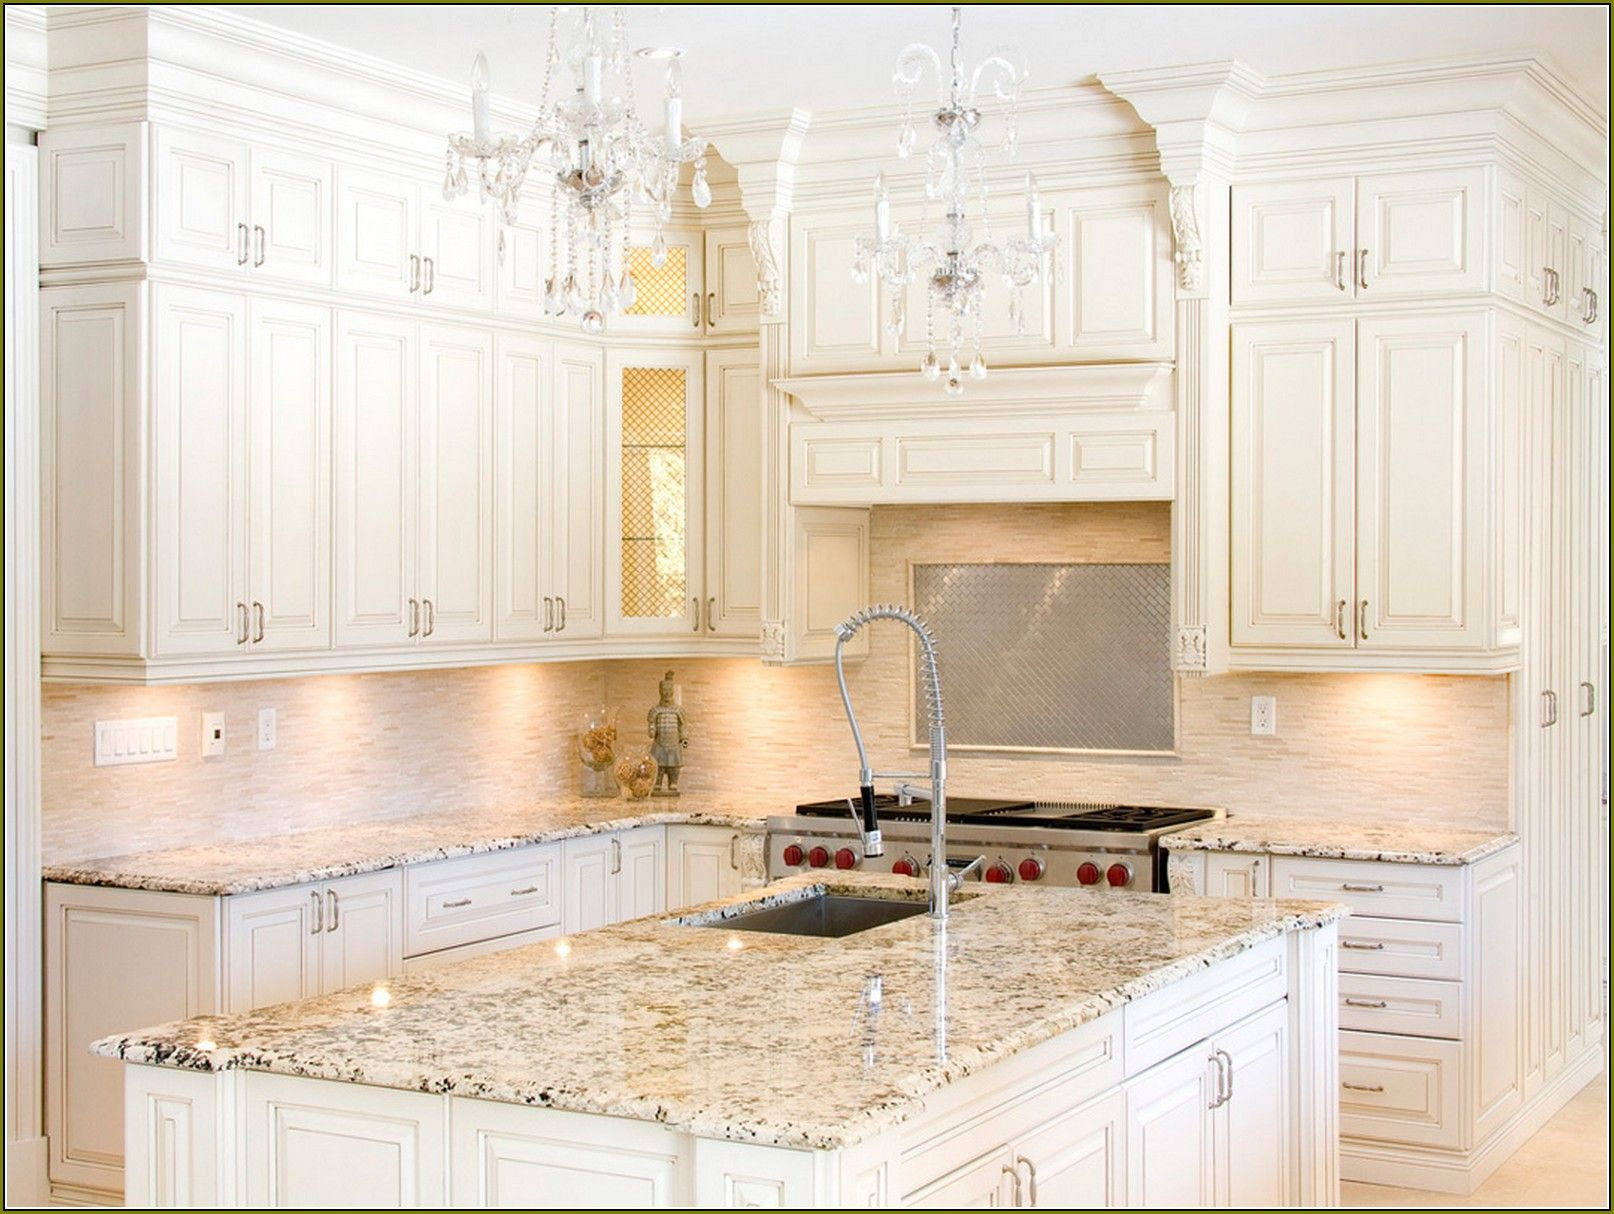 Off White Cabinets Off White Kitchen Cabinets With Granite Countertops